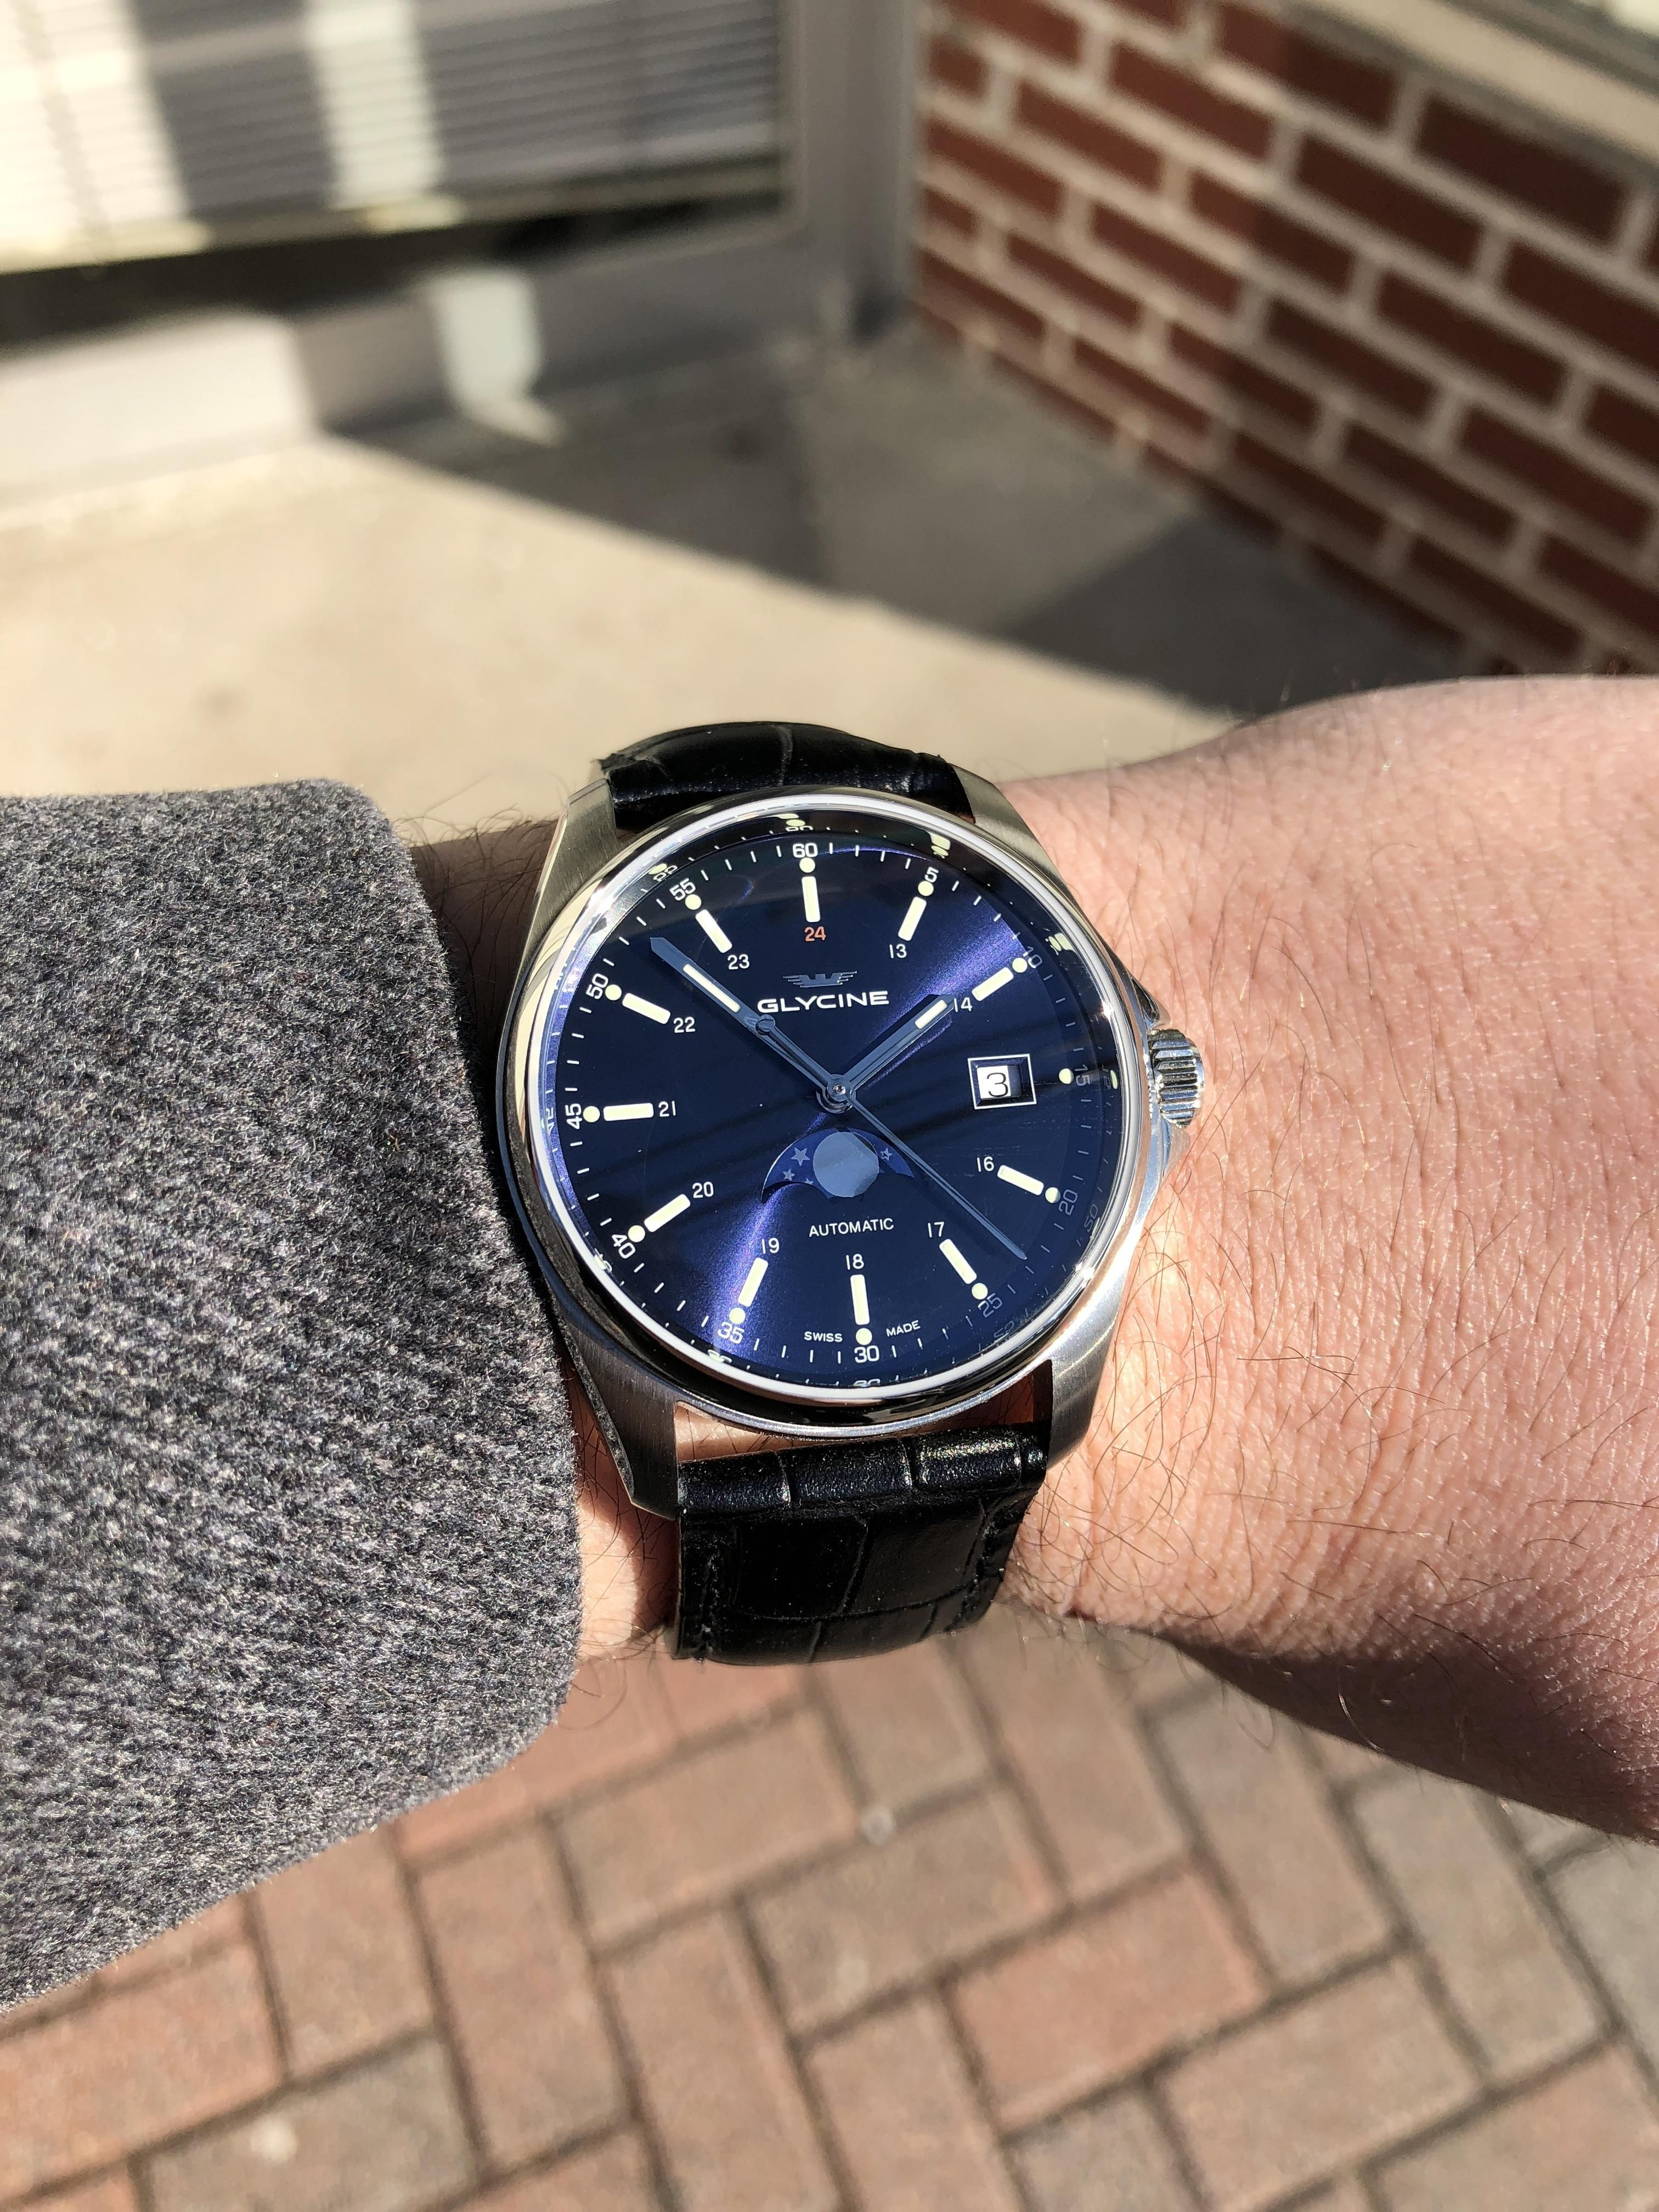 Pin by GetnHempd on Men's Watches in 2019 | Watches, Cool ...